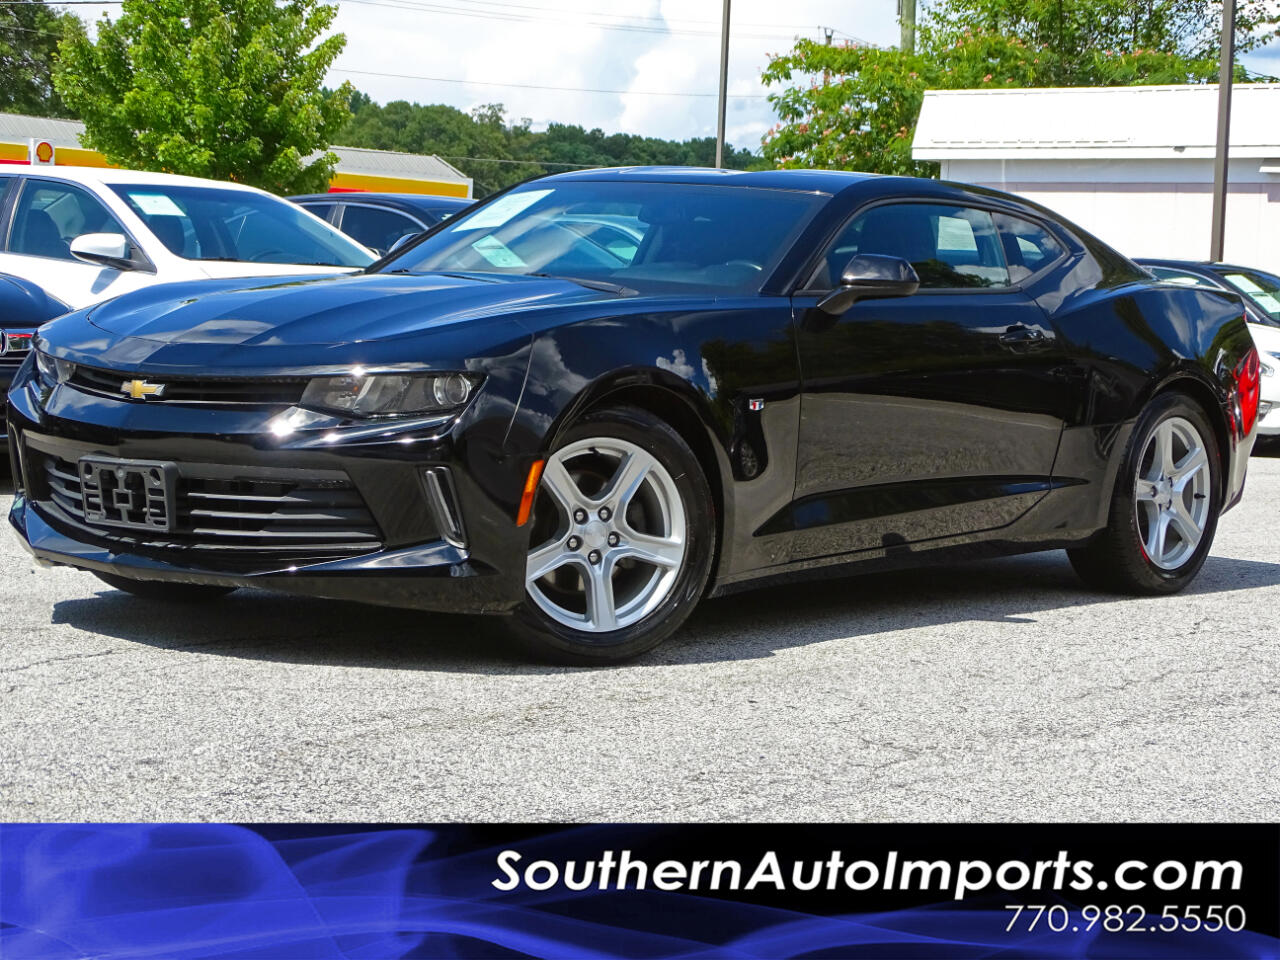 2016 Chevrolet Camaro Cpe LT w/1LT Back up Camera Satellite Radio